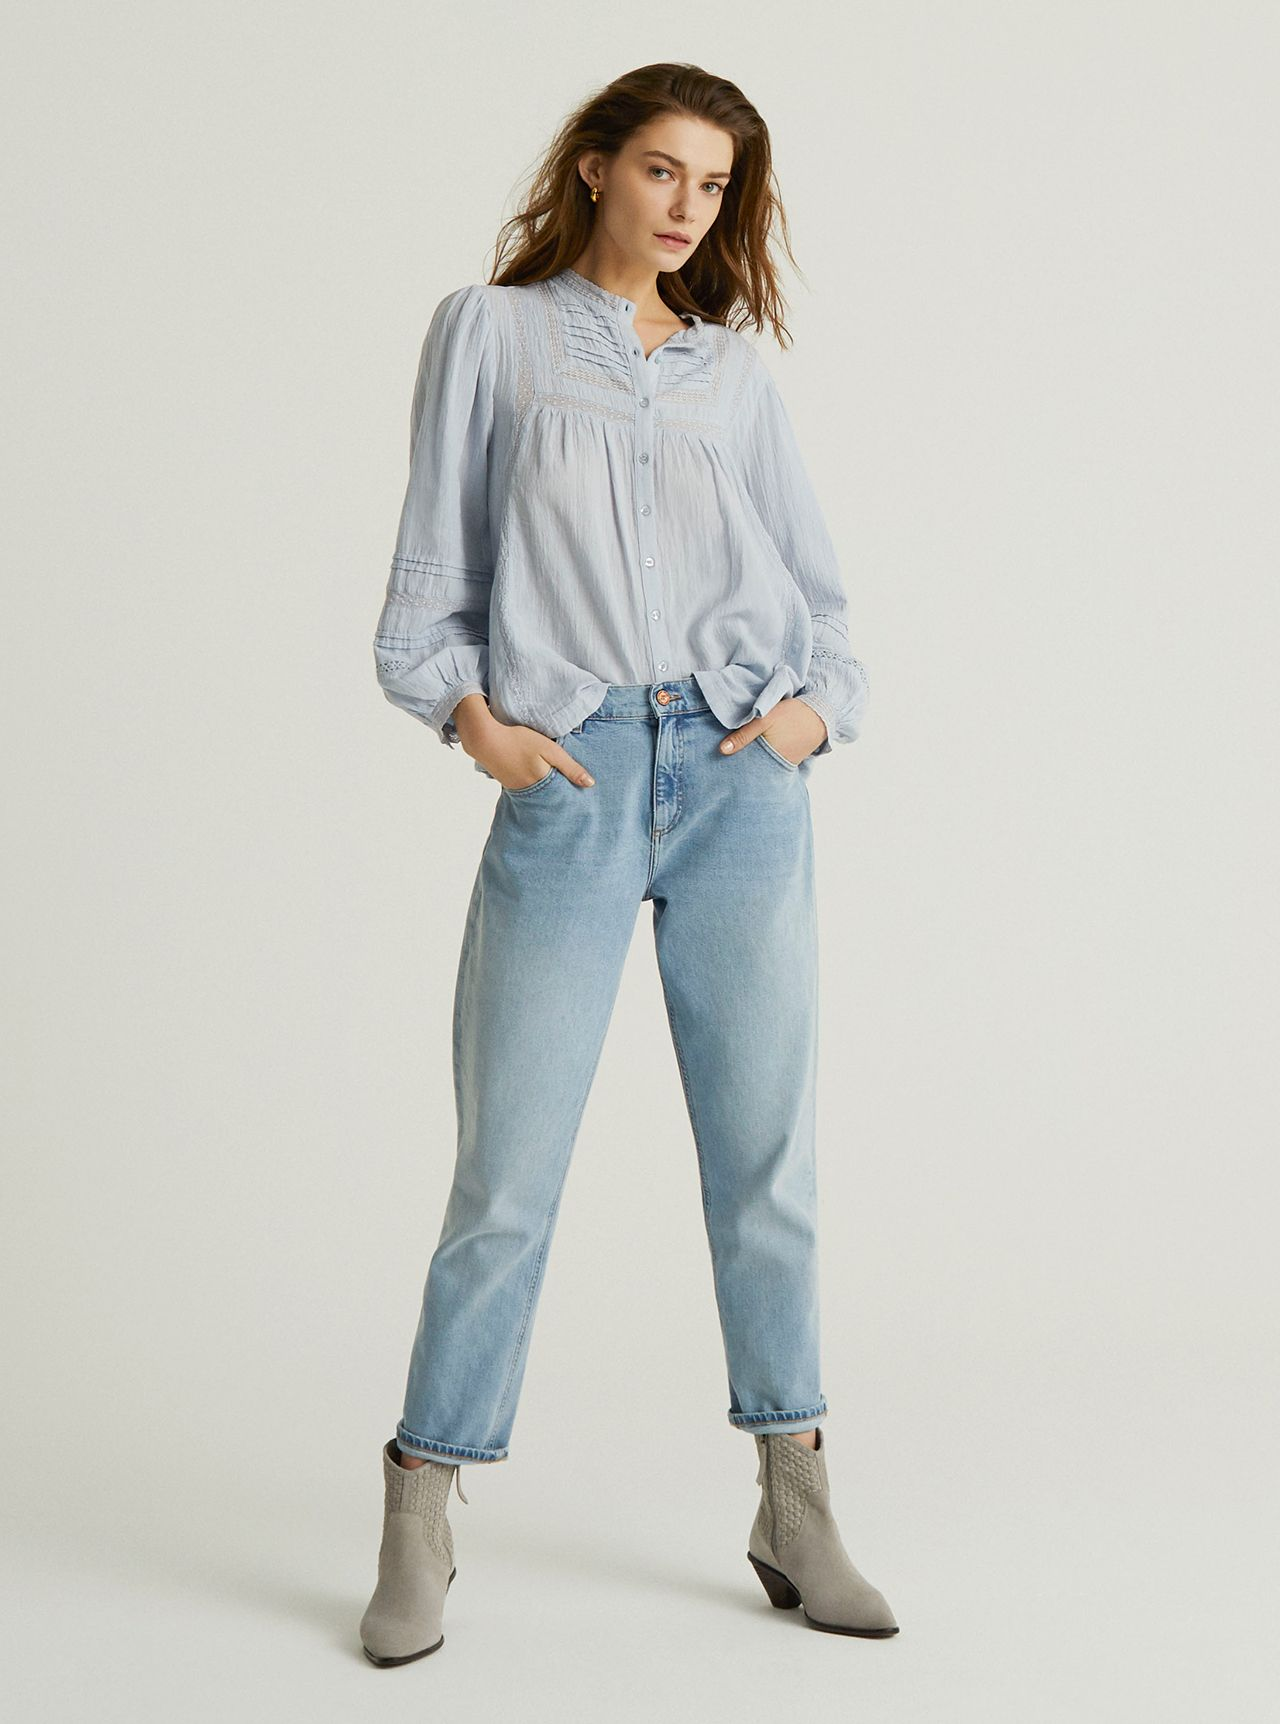 John Lewis & Partners Denim - The Boyfriend jean